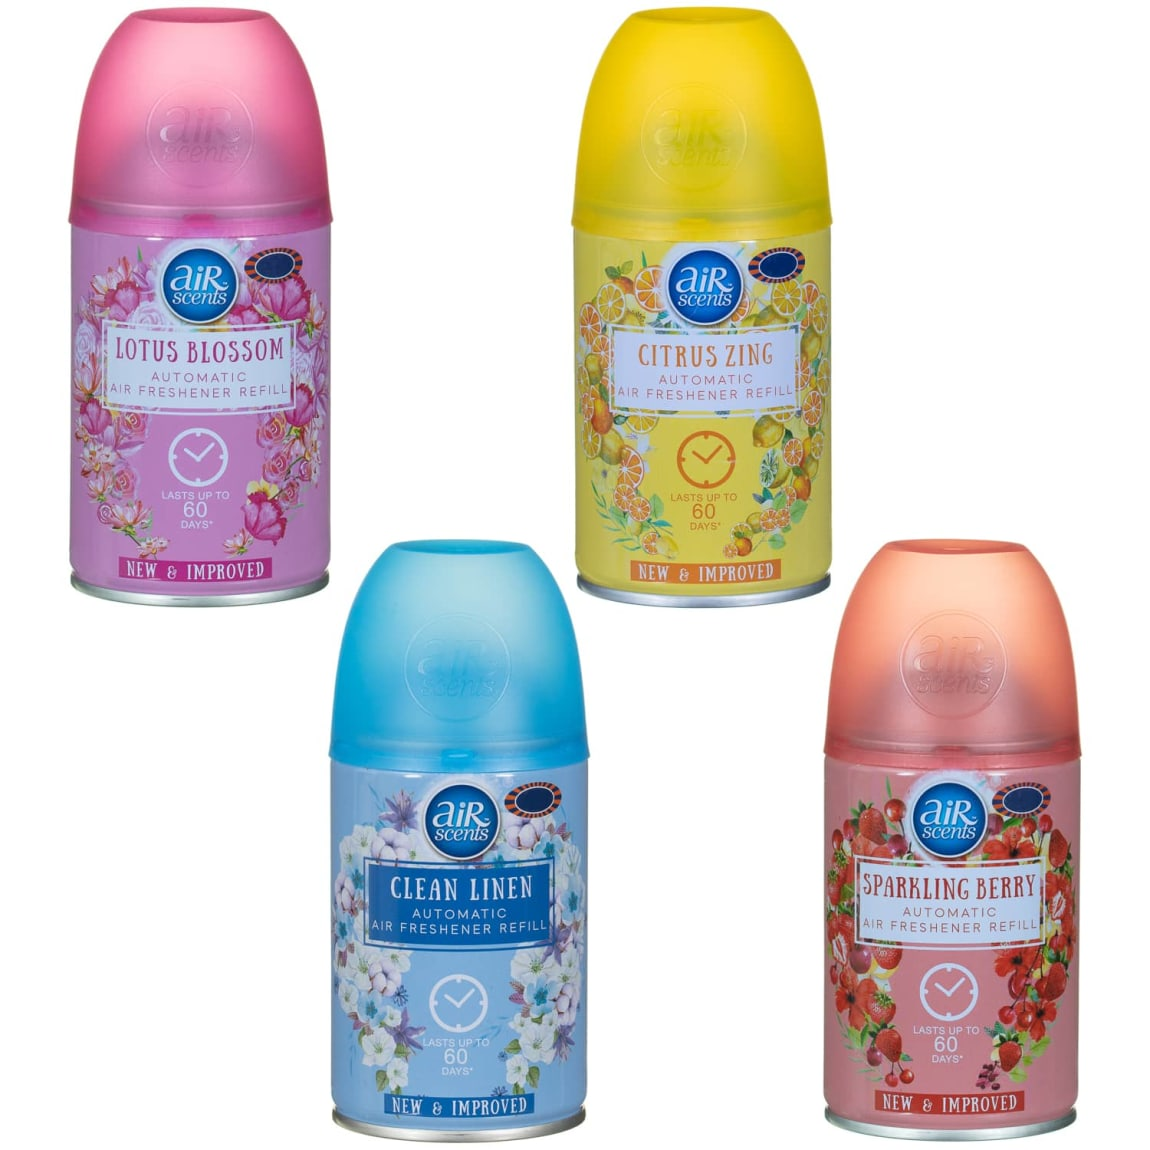 AirScents Automatic Air Freshener Refill 250ml - Clean Linen